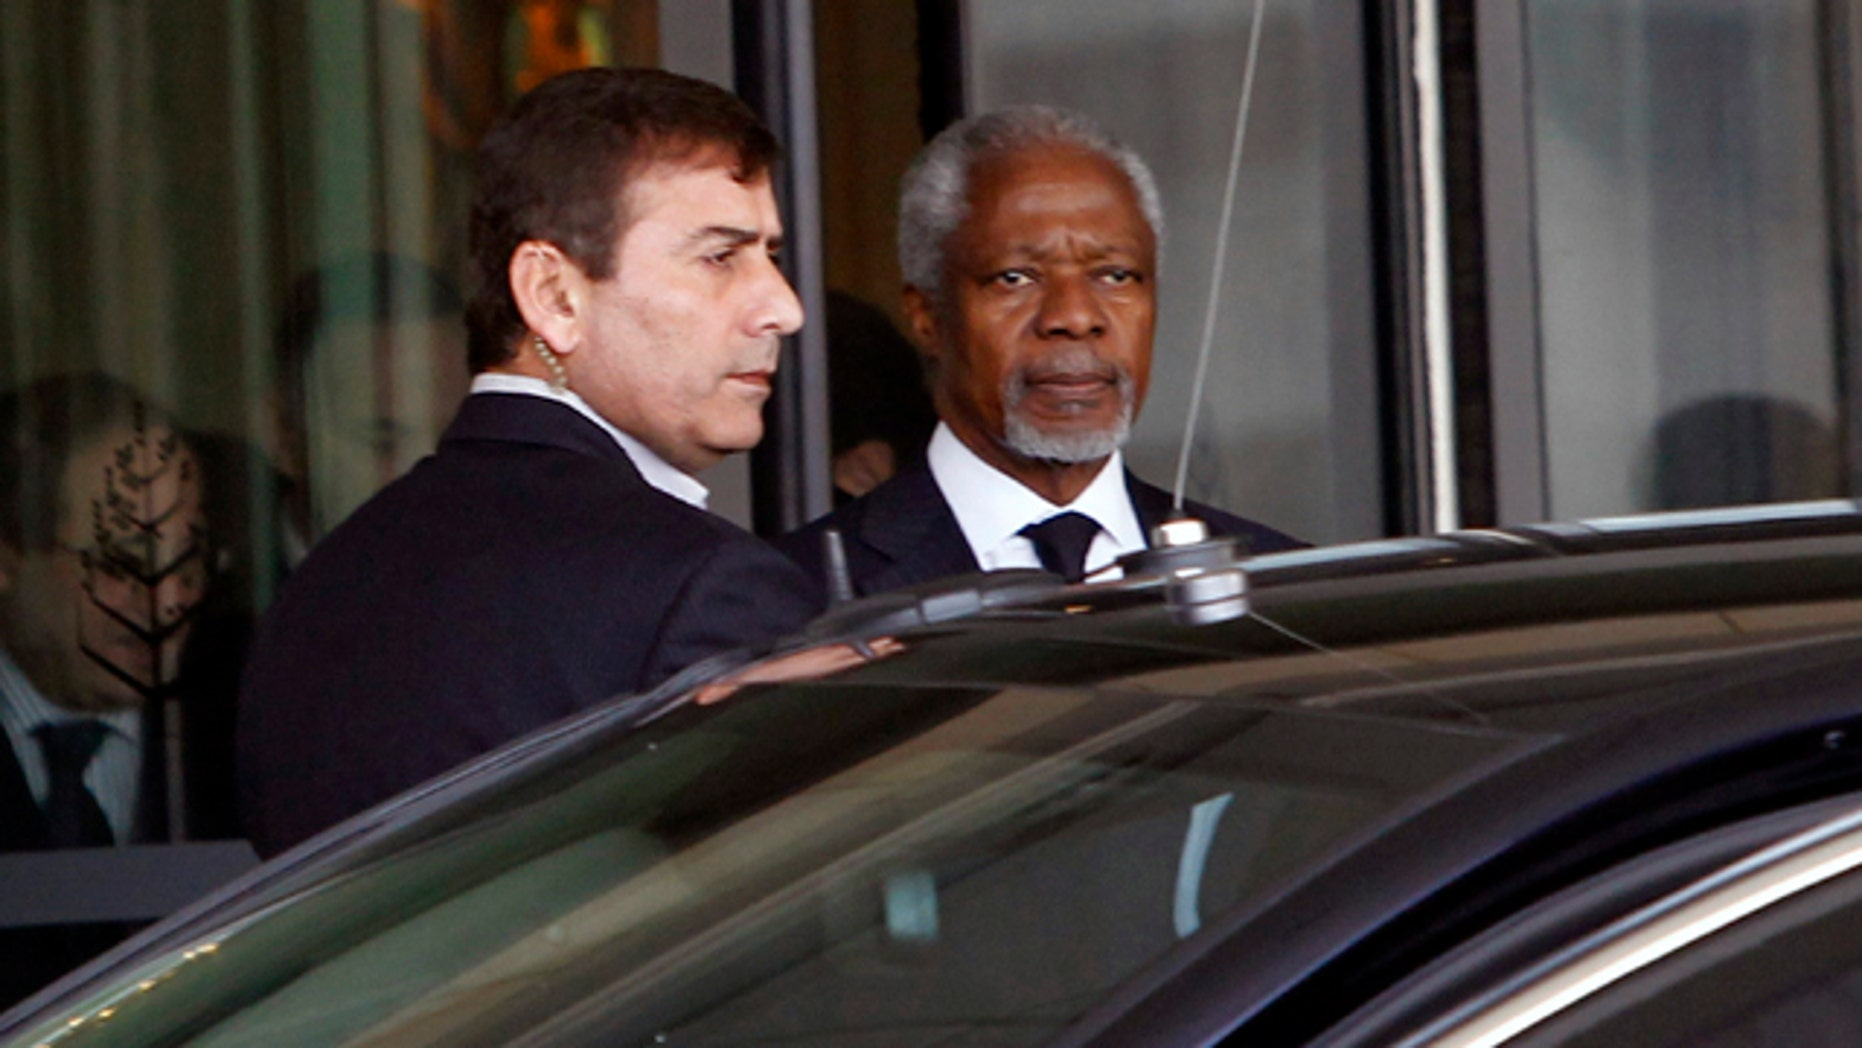 March 10, 2012: Kofi Annan, the United Nations special envoy to Syria, center, leaves the Four Seasons Hotel in Damascus, Syria on his way to the presidential palace for a meeting with Syrian President Bashar Assad.